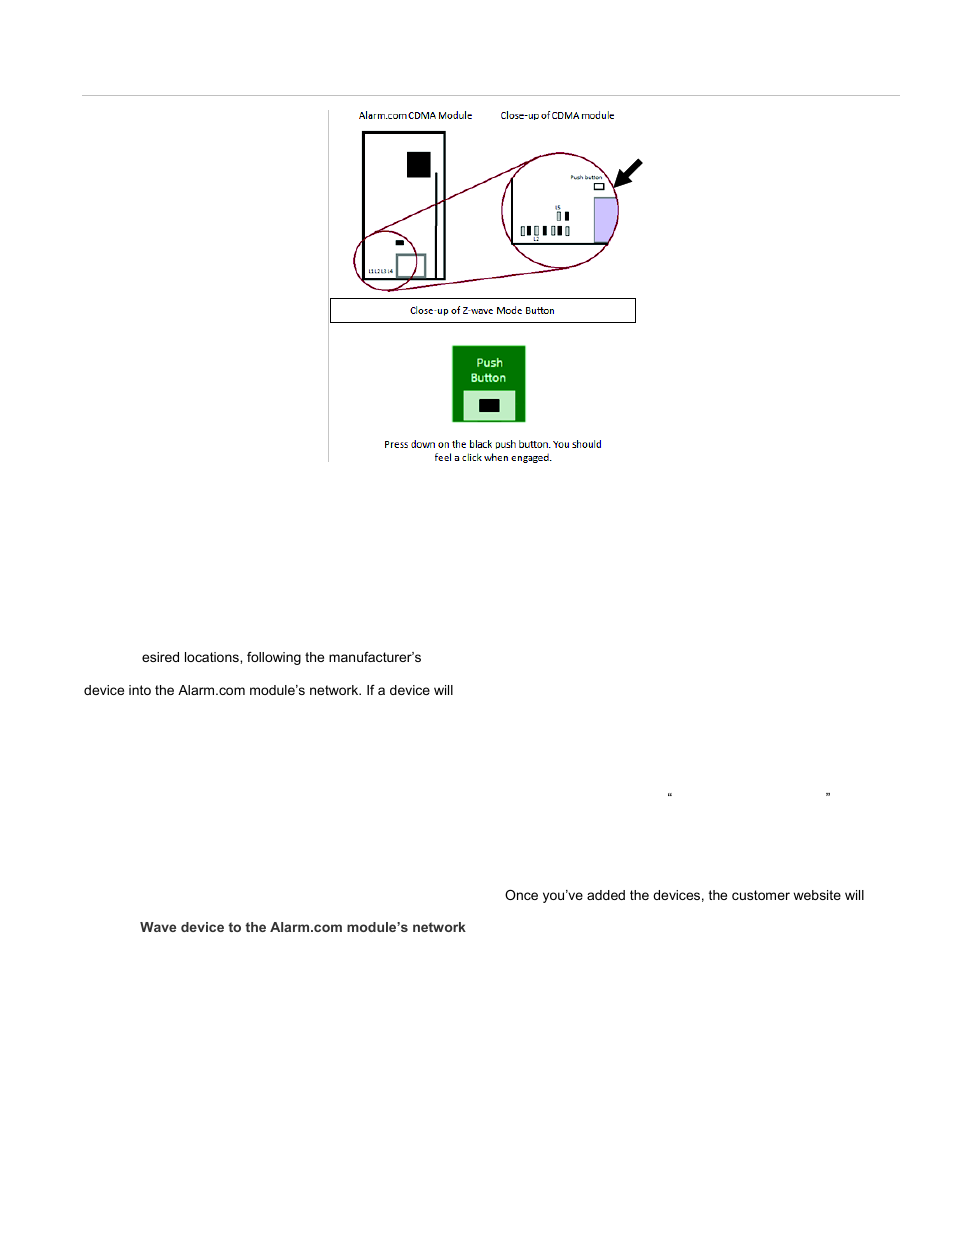 Concord 4 Alarm Wiring Diagram Electrical Simon Xt Interlogix 600 1053 User Manual Page 7 12 Dsc 1500